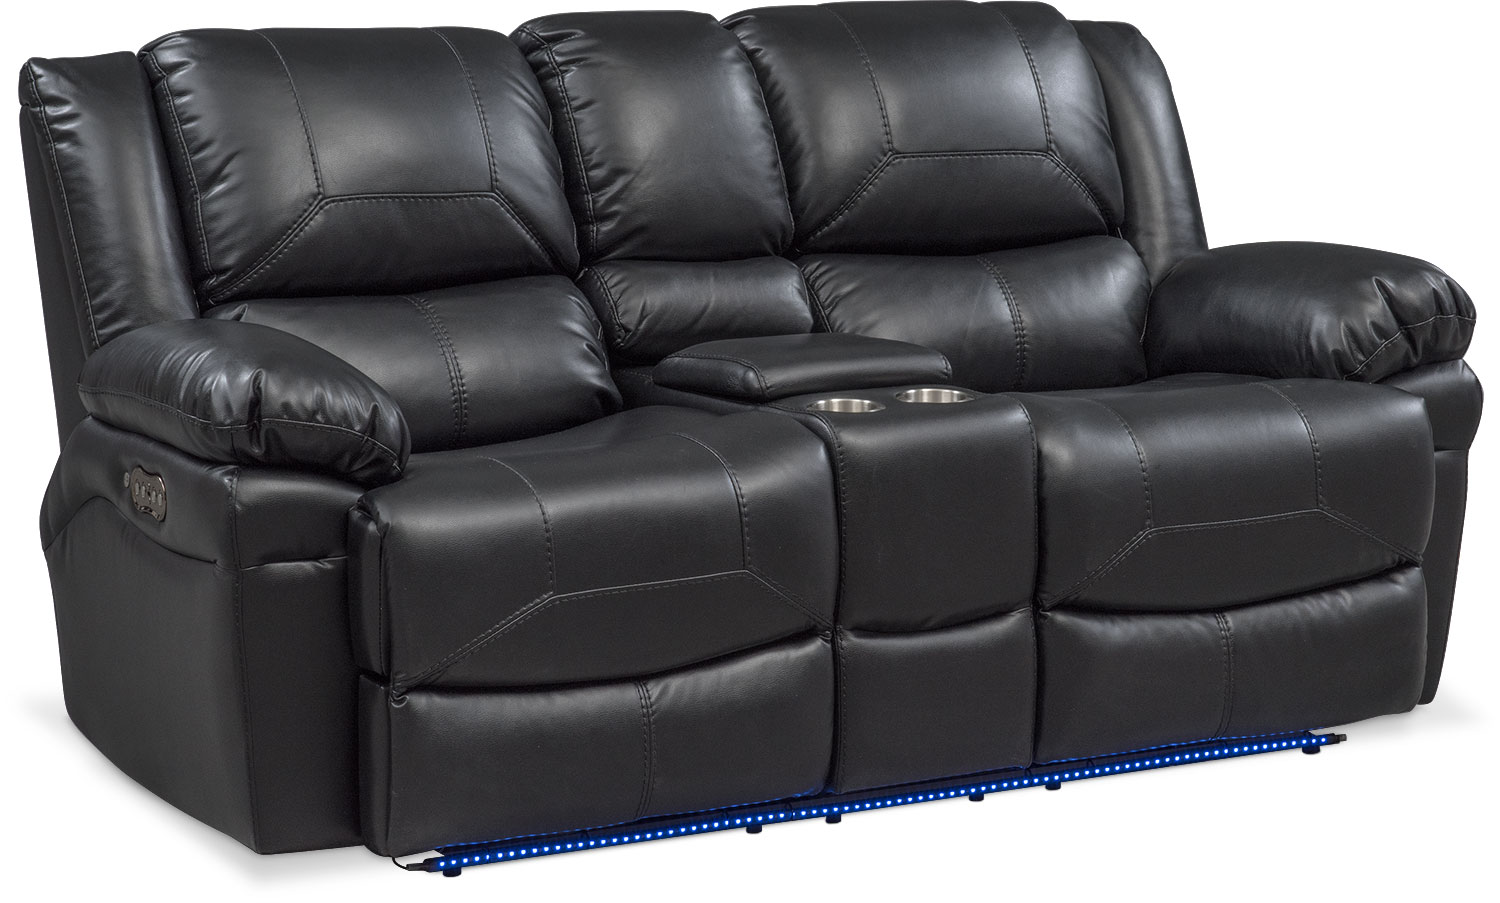 Monza Dual Power Reclining Loveseat with Console - Black | Value